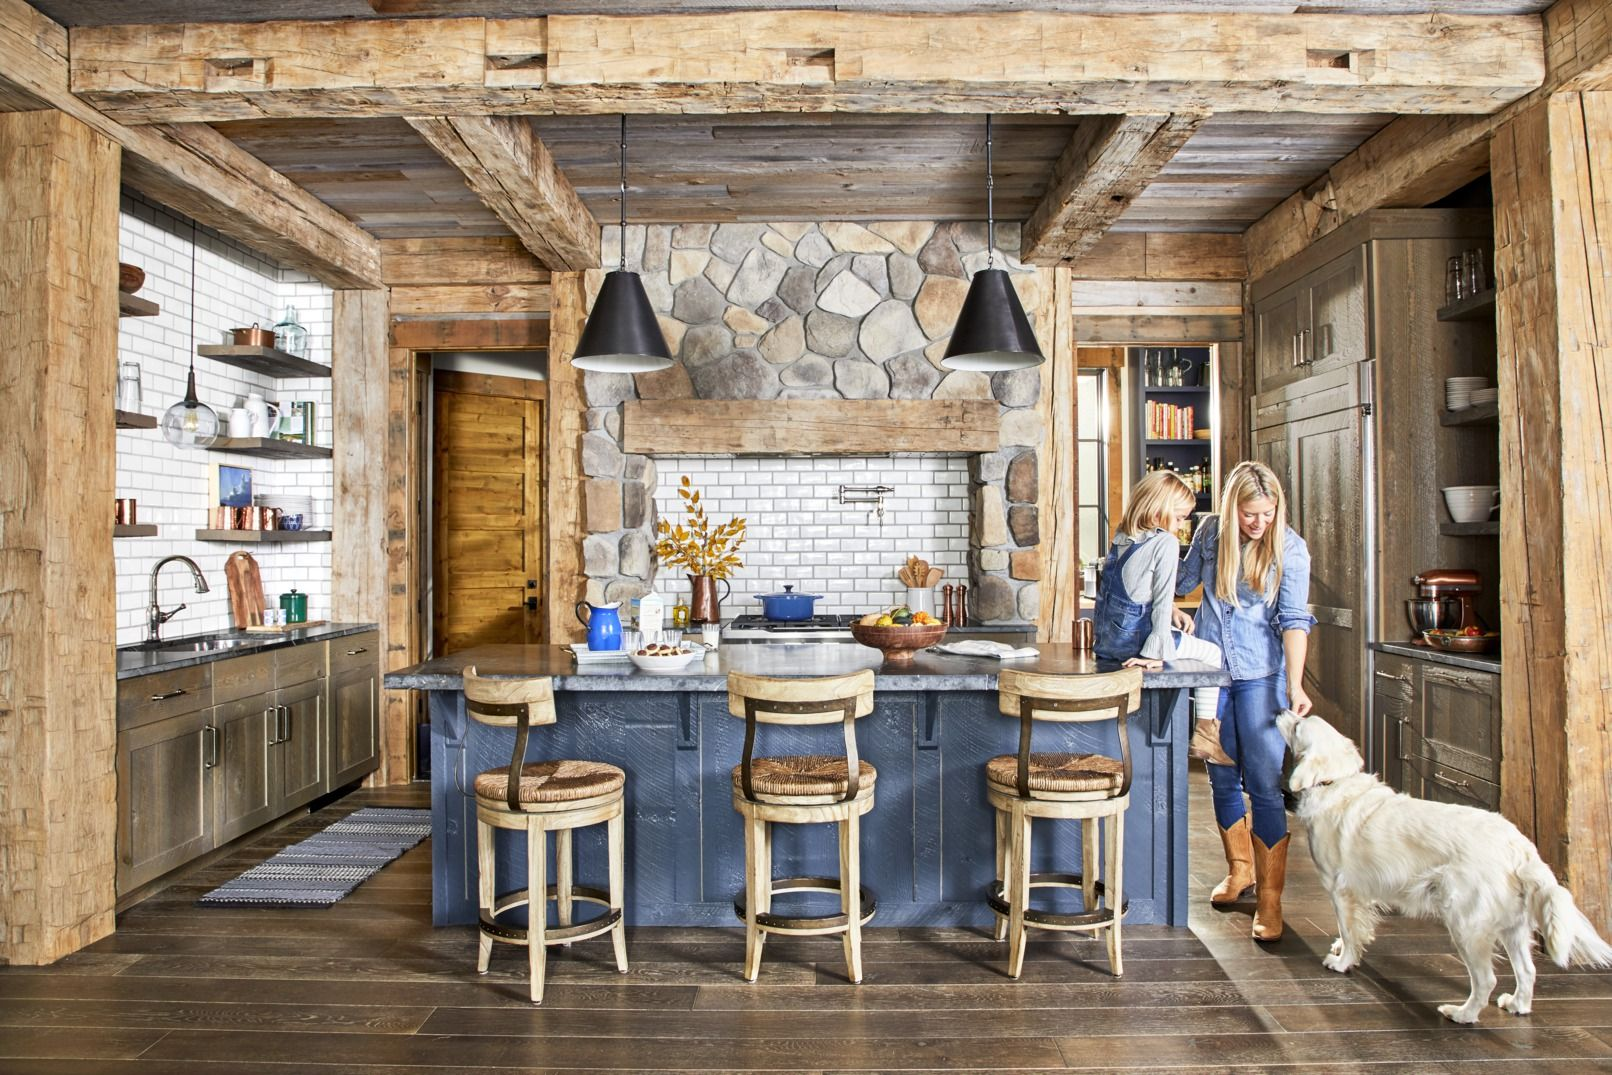 05/01/2021· in 2021 and beyond, kitchen design trends move in a warmer, more organic direction. 39 Kitchen Trends 2021 New Cabinet And Color Design Ideas